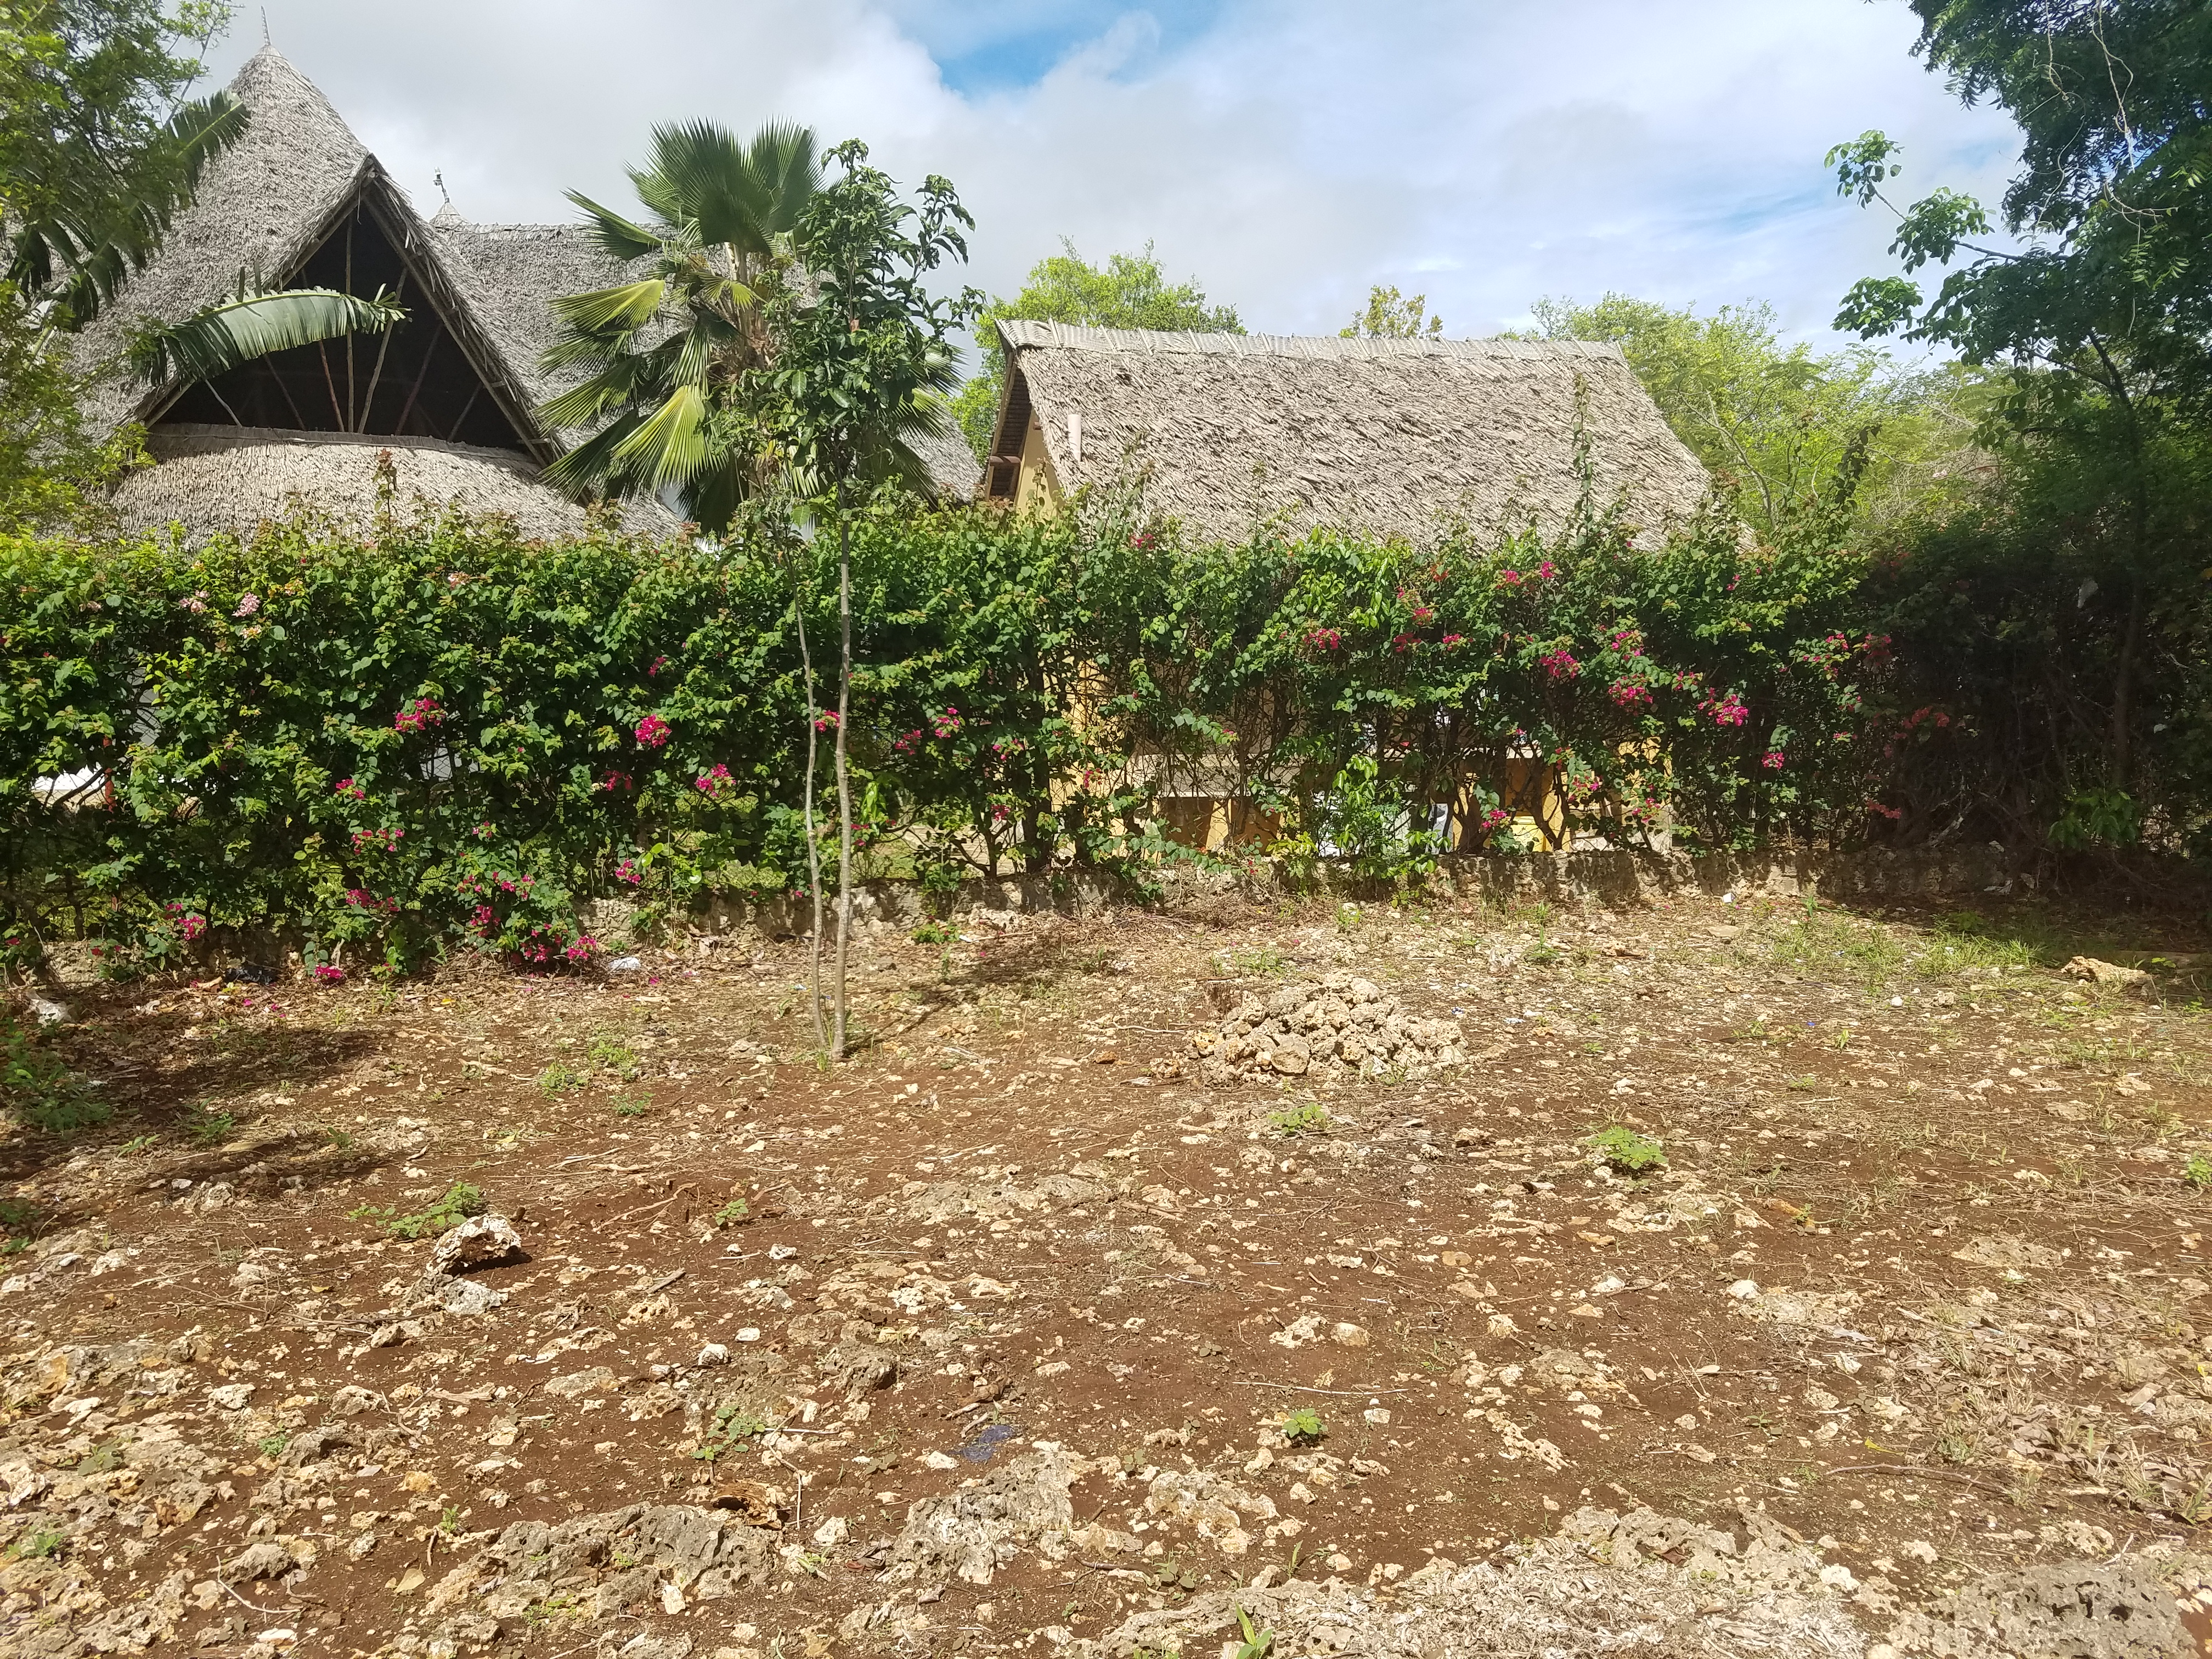 Property for sale in Diani in a gated community